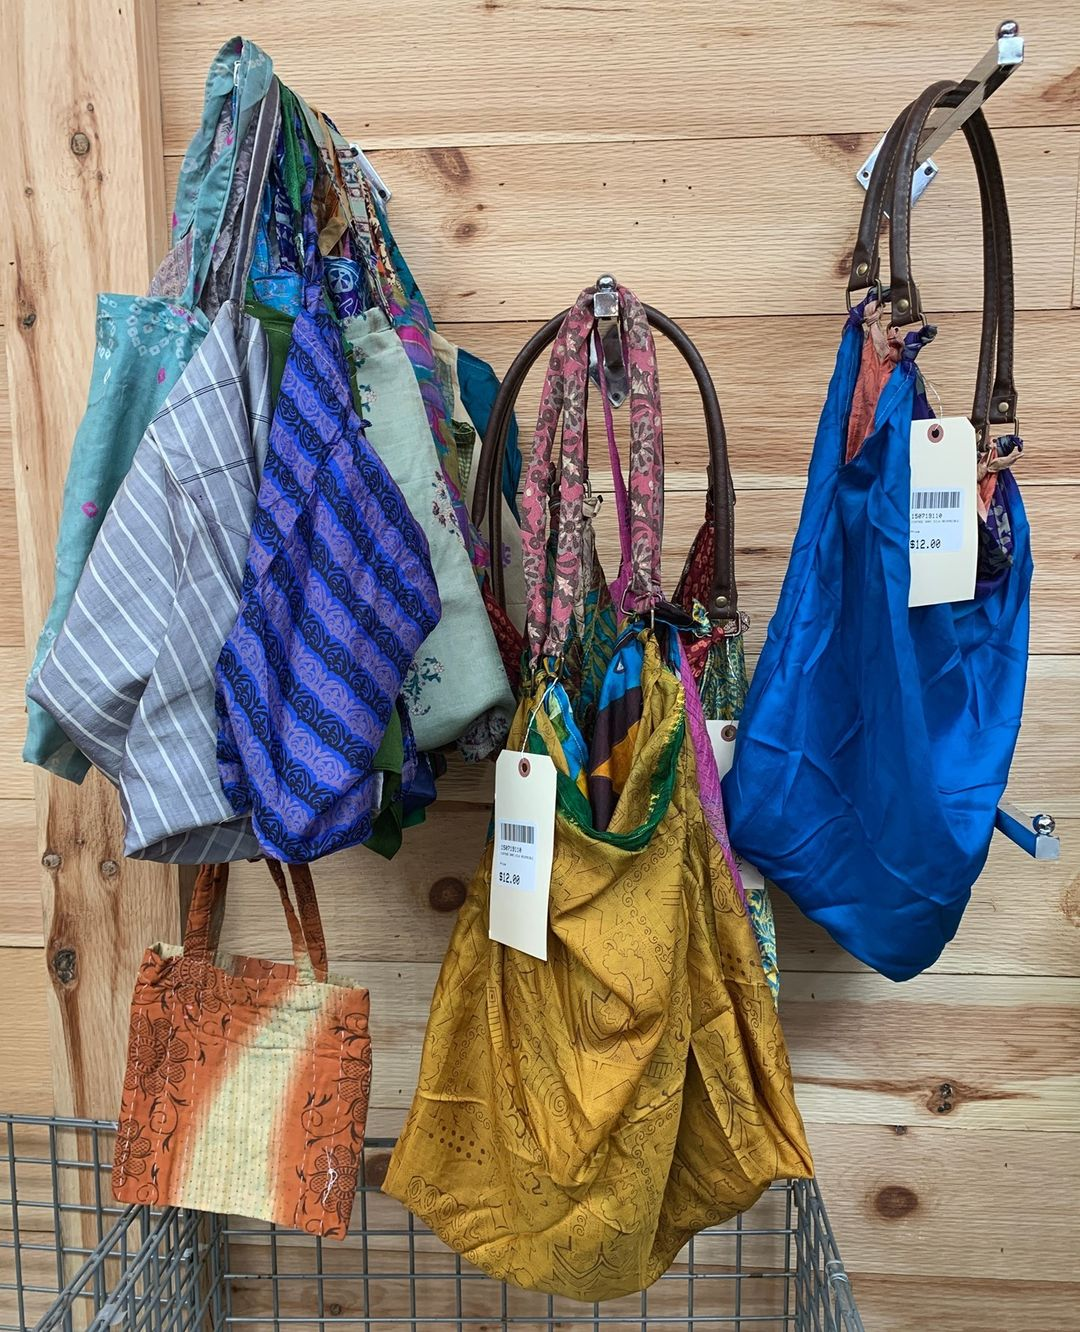 These Vintage Sari Silk Reversible Bags make great market totes, carry-on bags, beach bags, and everyday purses. Get them for just $12 each.